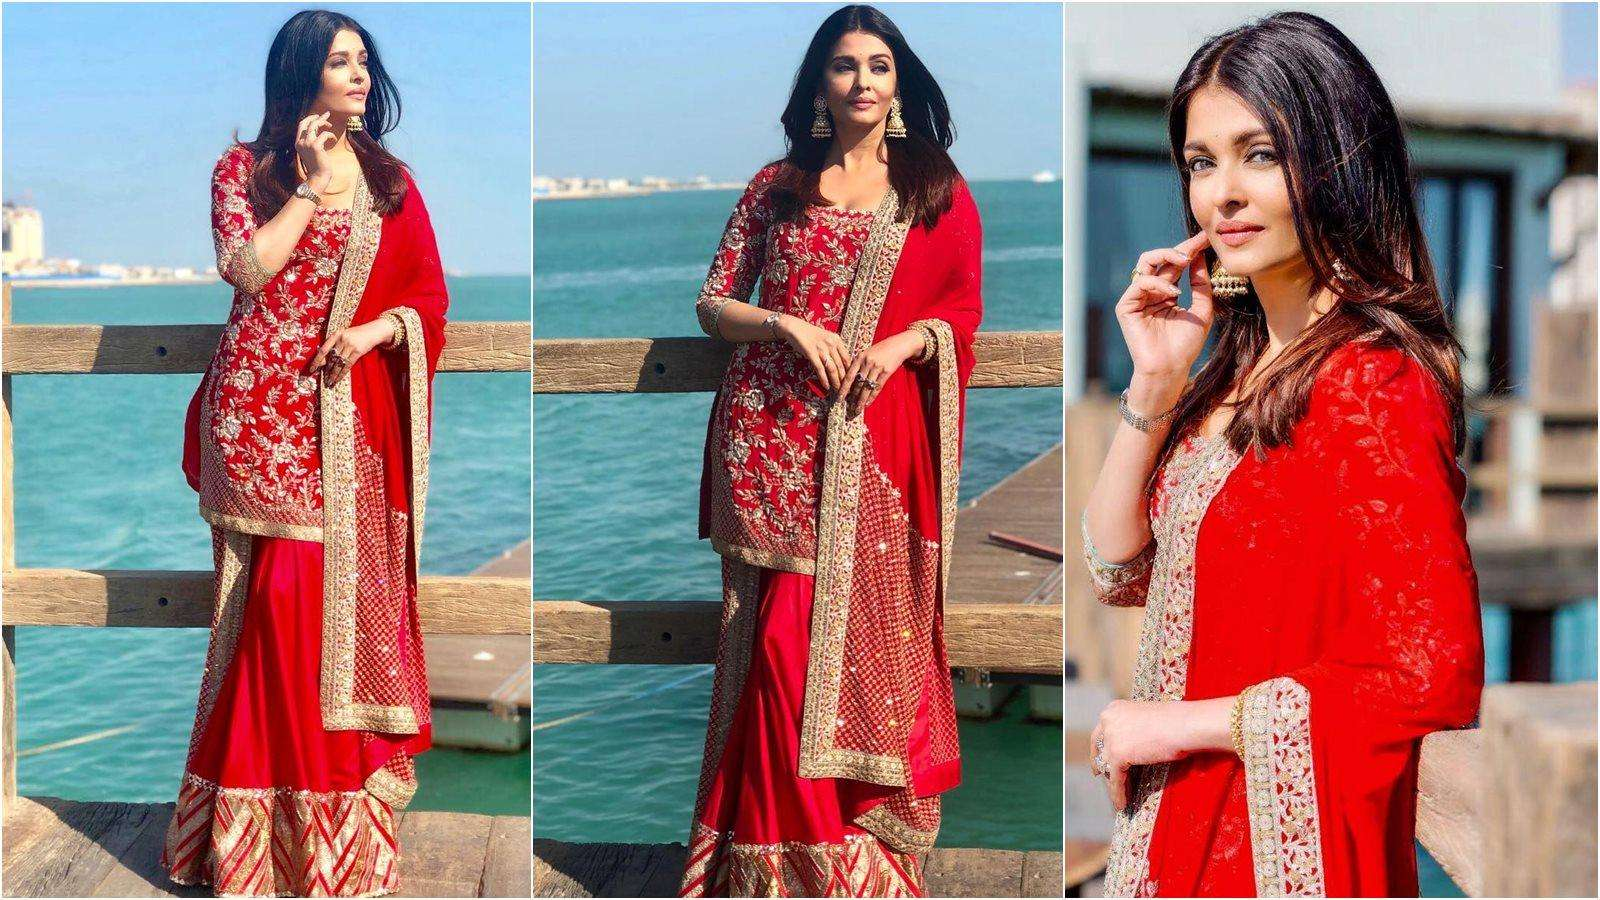 ea6d50b7f60 red satin dress: Latest News, Videos and Photos of red satin dress ...